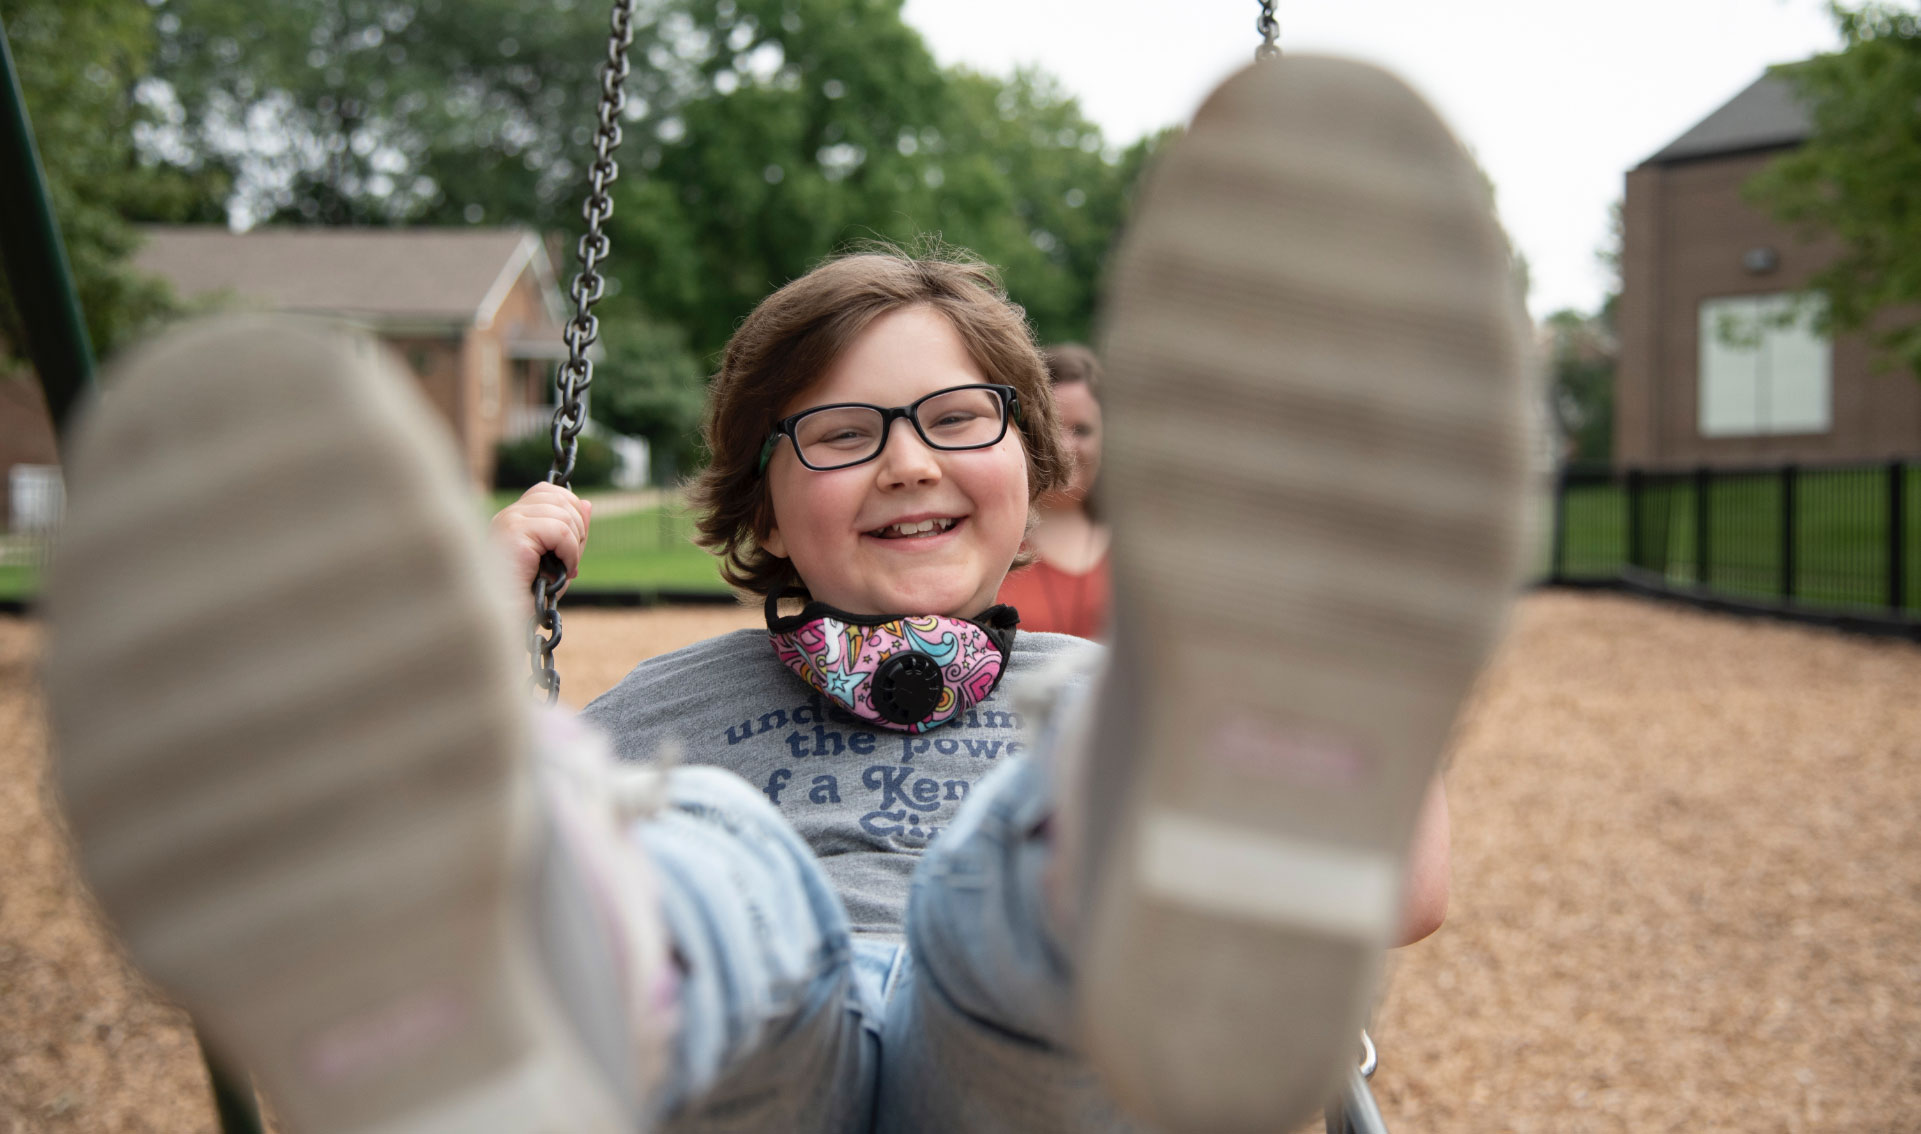 A close-up photo of Ellie swinging and smiling with her feet closest to the camera and blurred slightly. Her mother, Morgan, can be seen in the background.